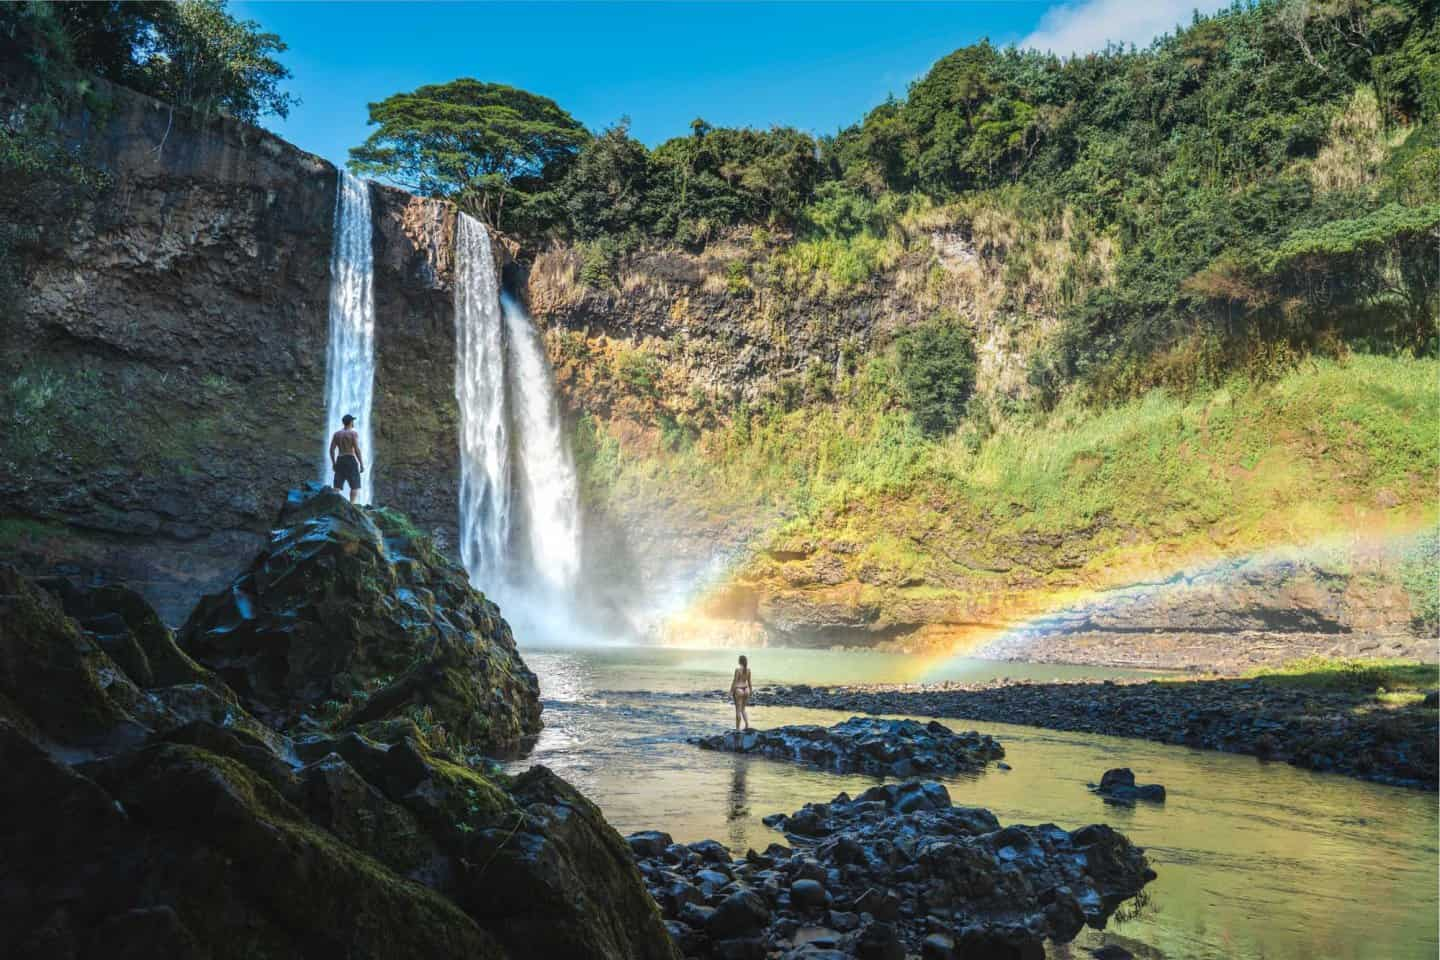 Posing under a rainbow at Wailua Falls in Kauai.